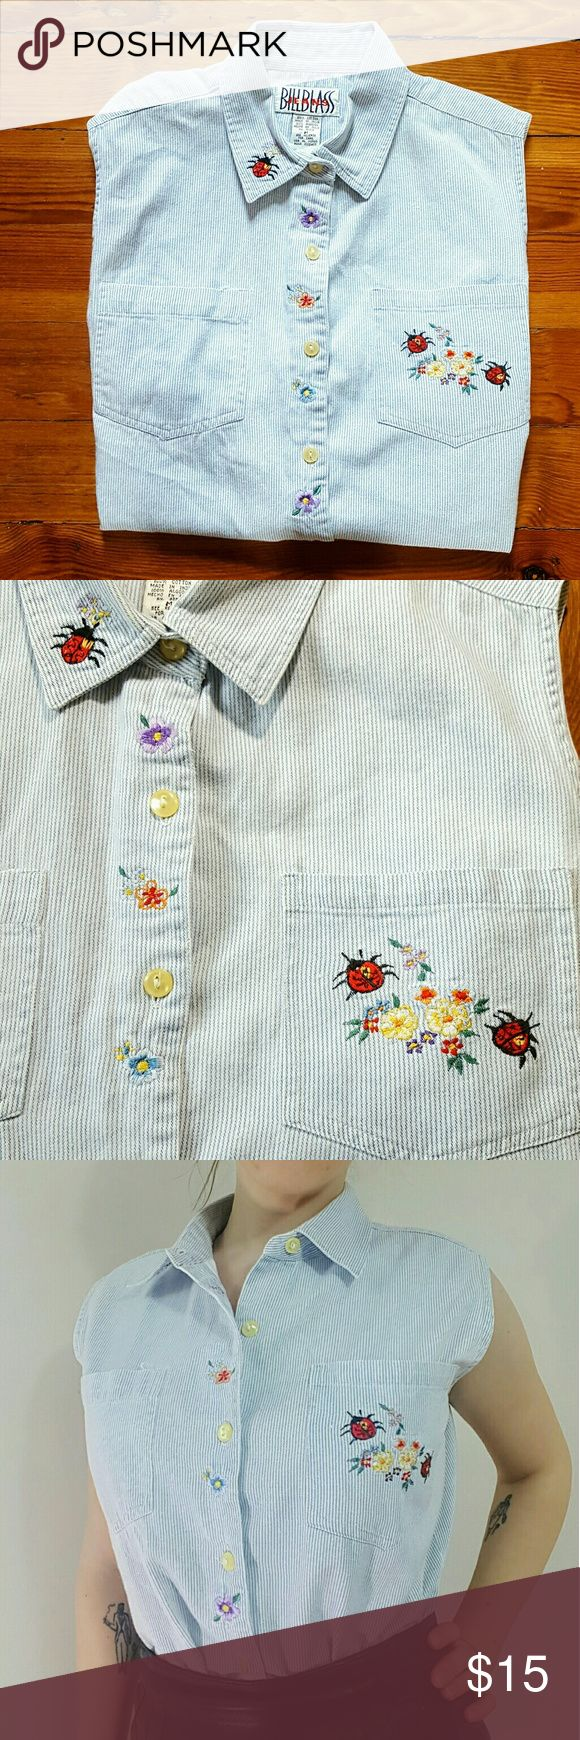 """Vintage Embroidered Lady Bug Top Vintage embroidered pinstripe top by Bill Blass Jeans. With Lady Bugs and flowers! 100% cotton. Marked a size M- 20.5"""" armpit to armpit, 24"""" long at longest point. Excellent condition. #billblass #ladybugs #roses #floral #90s Vintage Tops"""